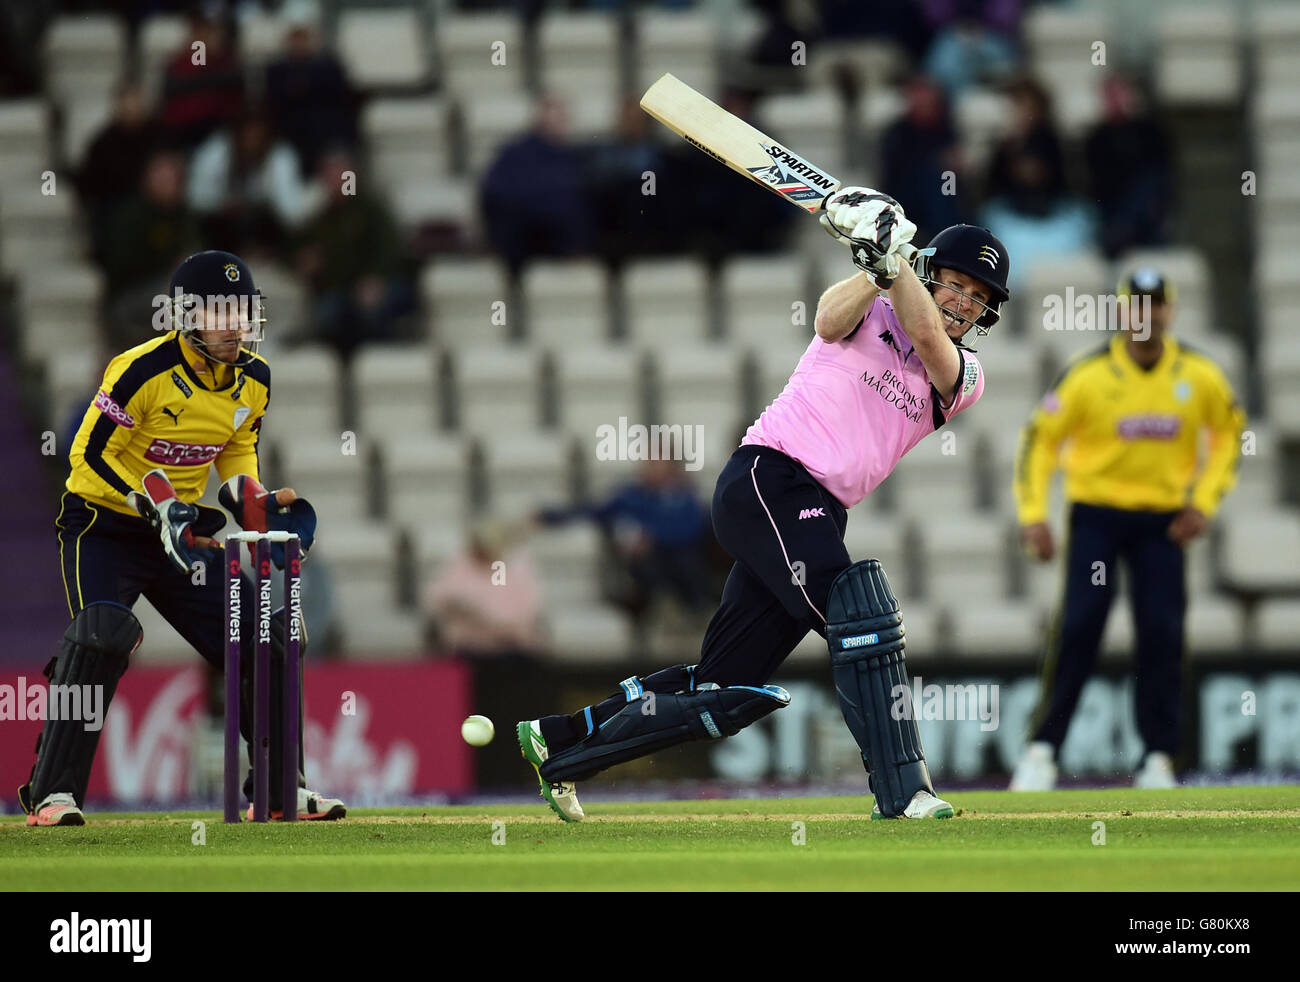 Cricket - Natwest T20 Blast - Hampshire v Middlesex - The Ageas Bowl